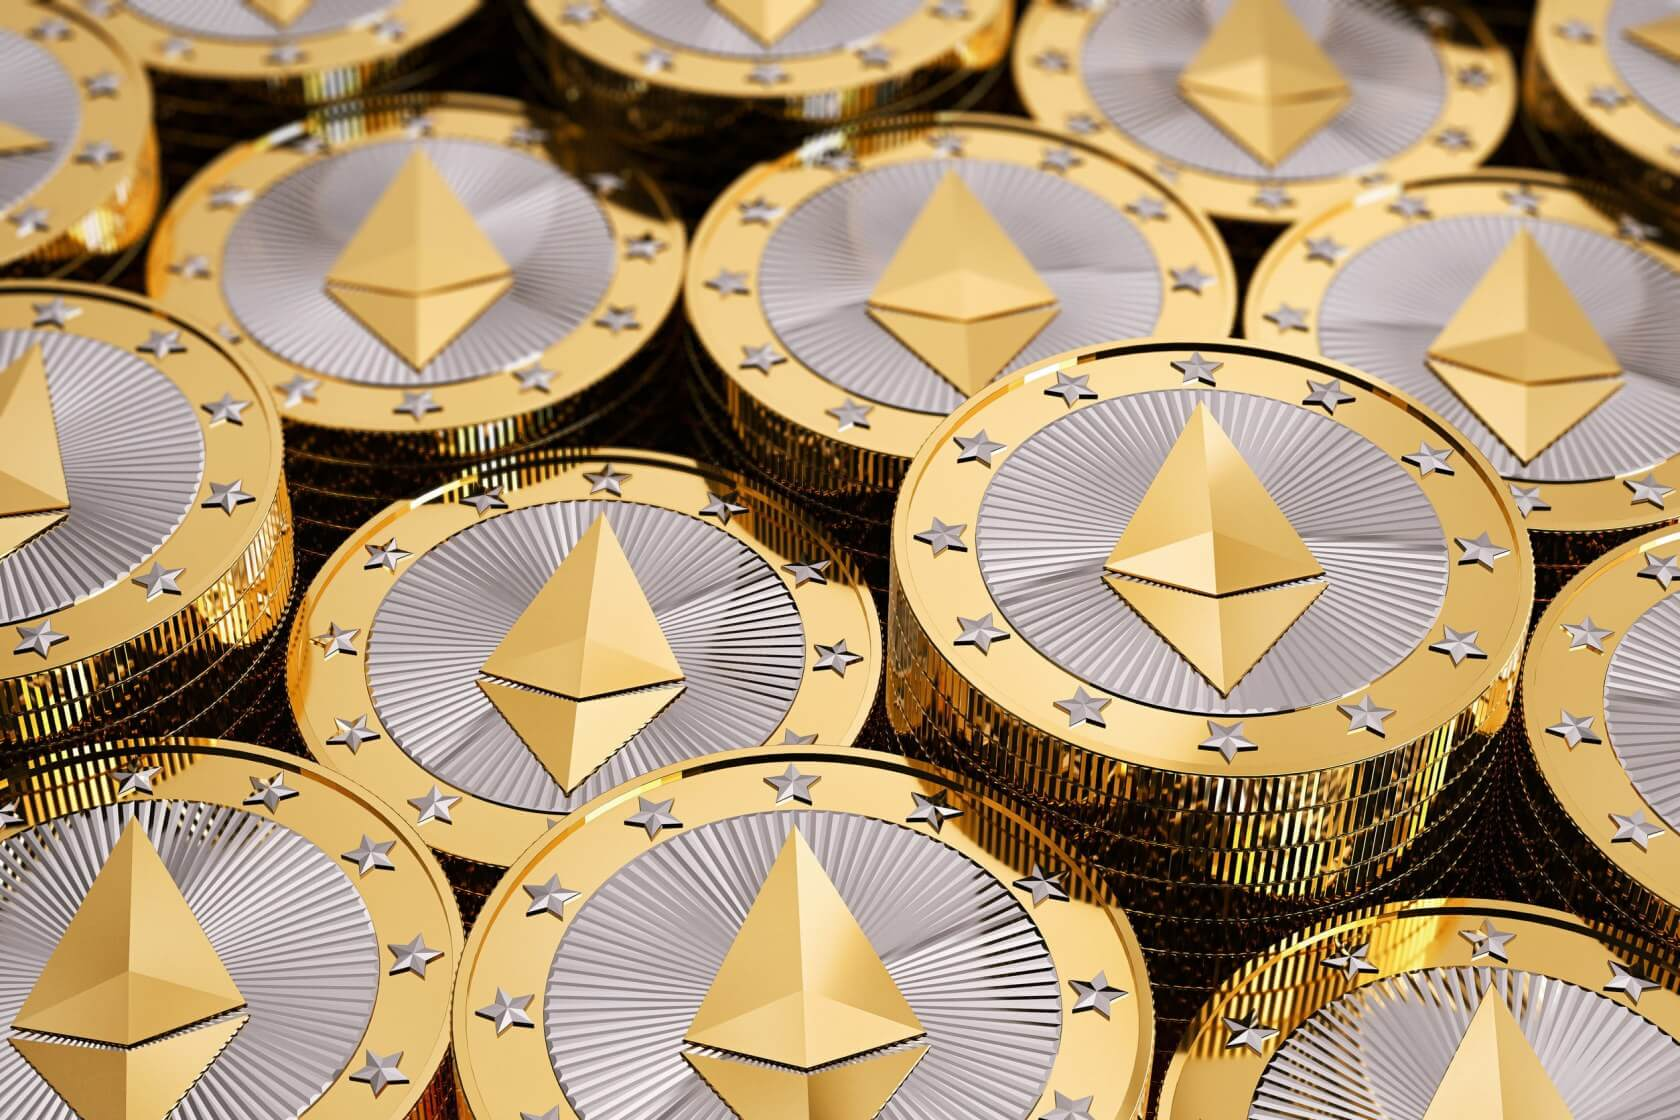 Hackers make off with $13,000 in Ethereum with a BGP/DNS one-two punch